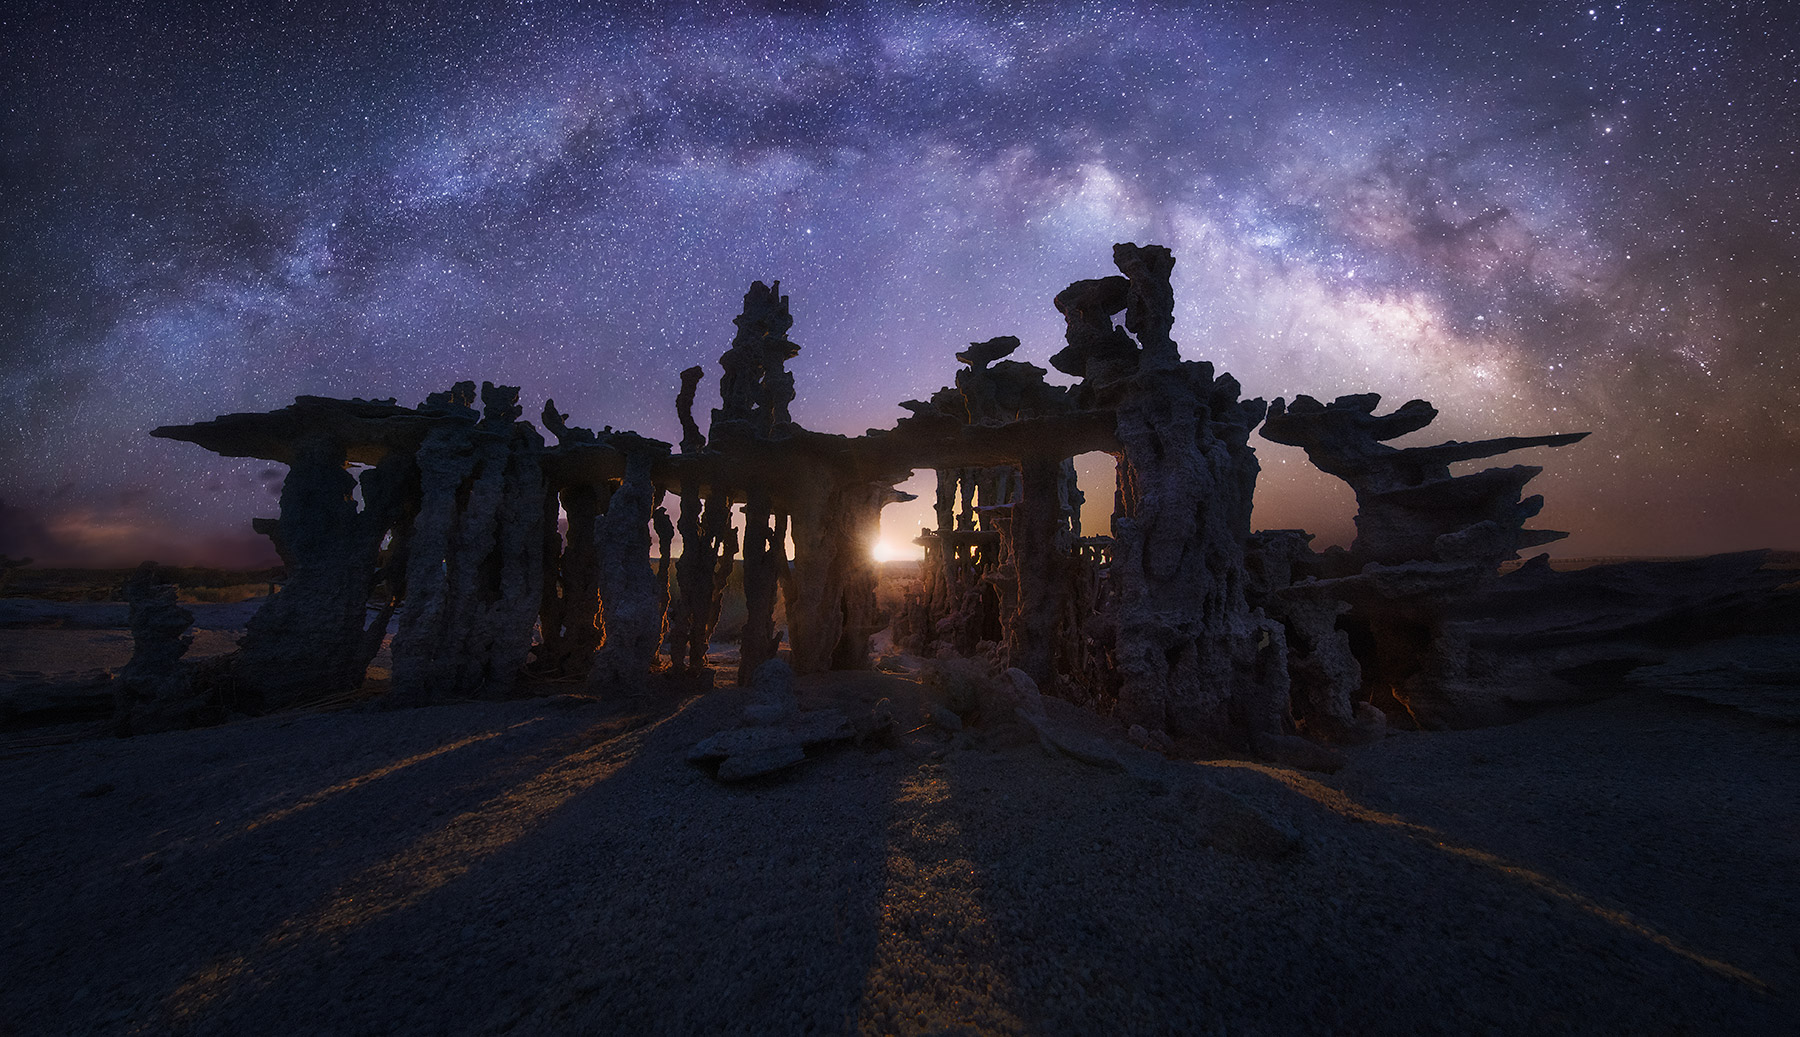 The light of the crescent MOON rises between towers of sand tufa rock. Three images were used side by side to record the...